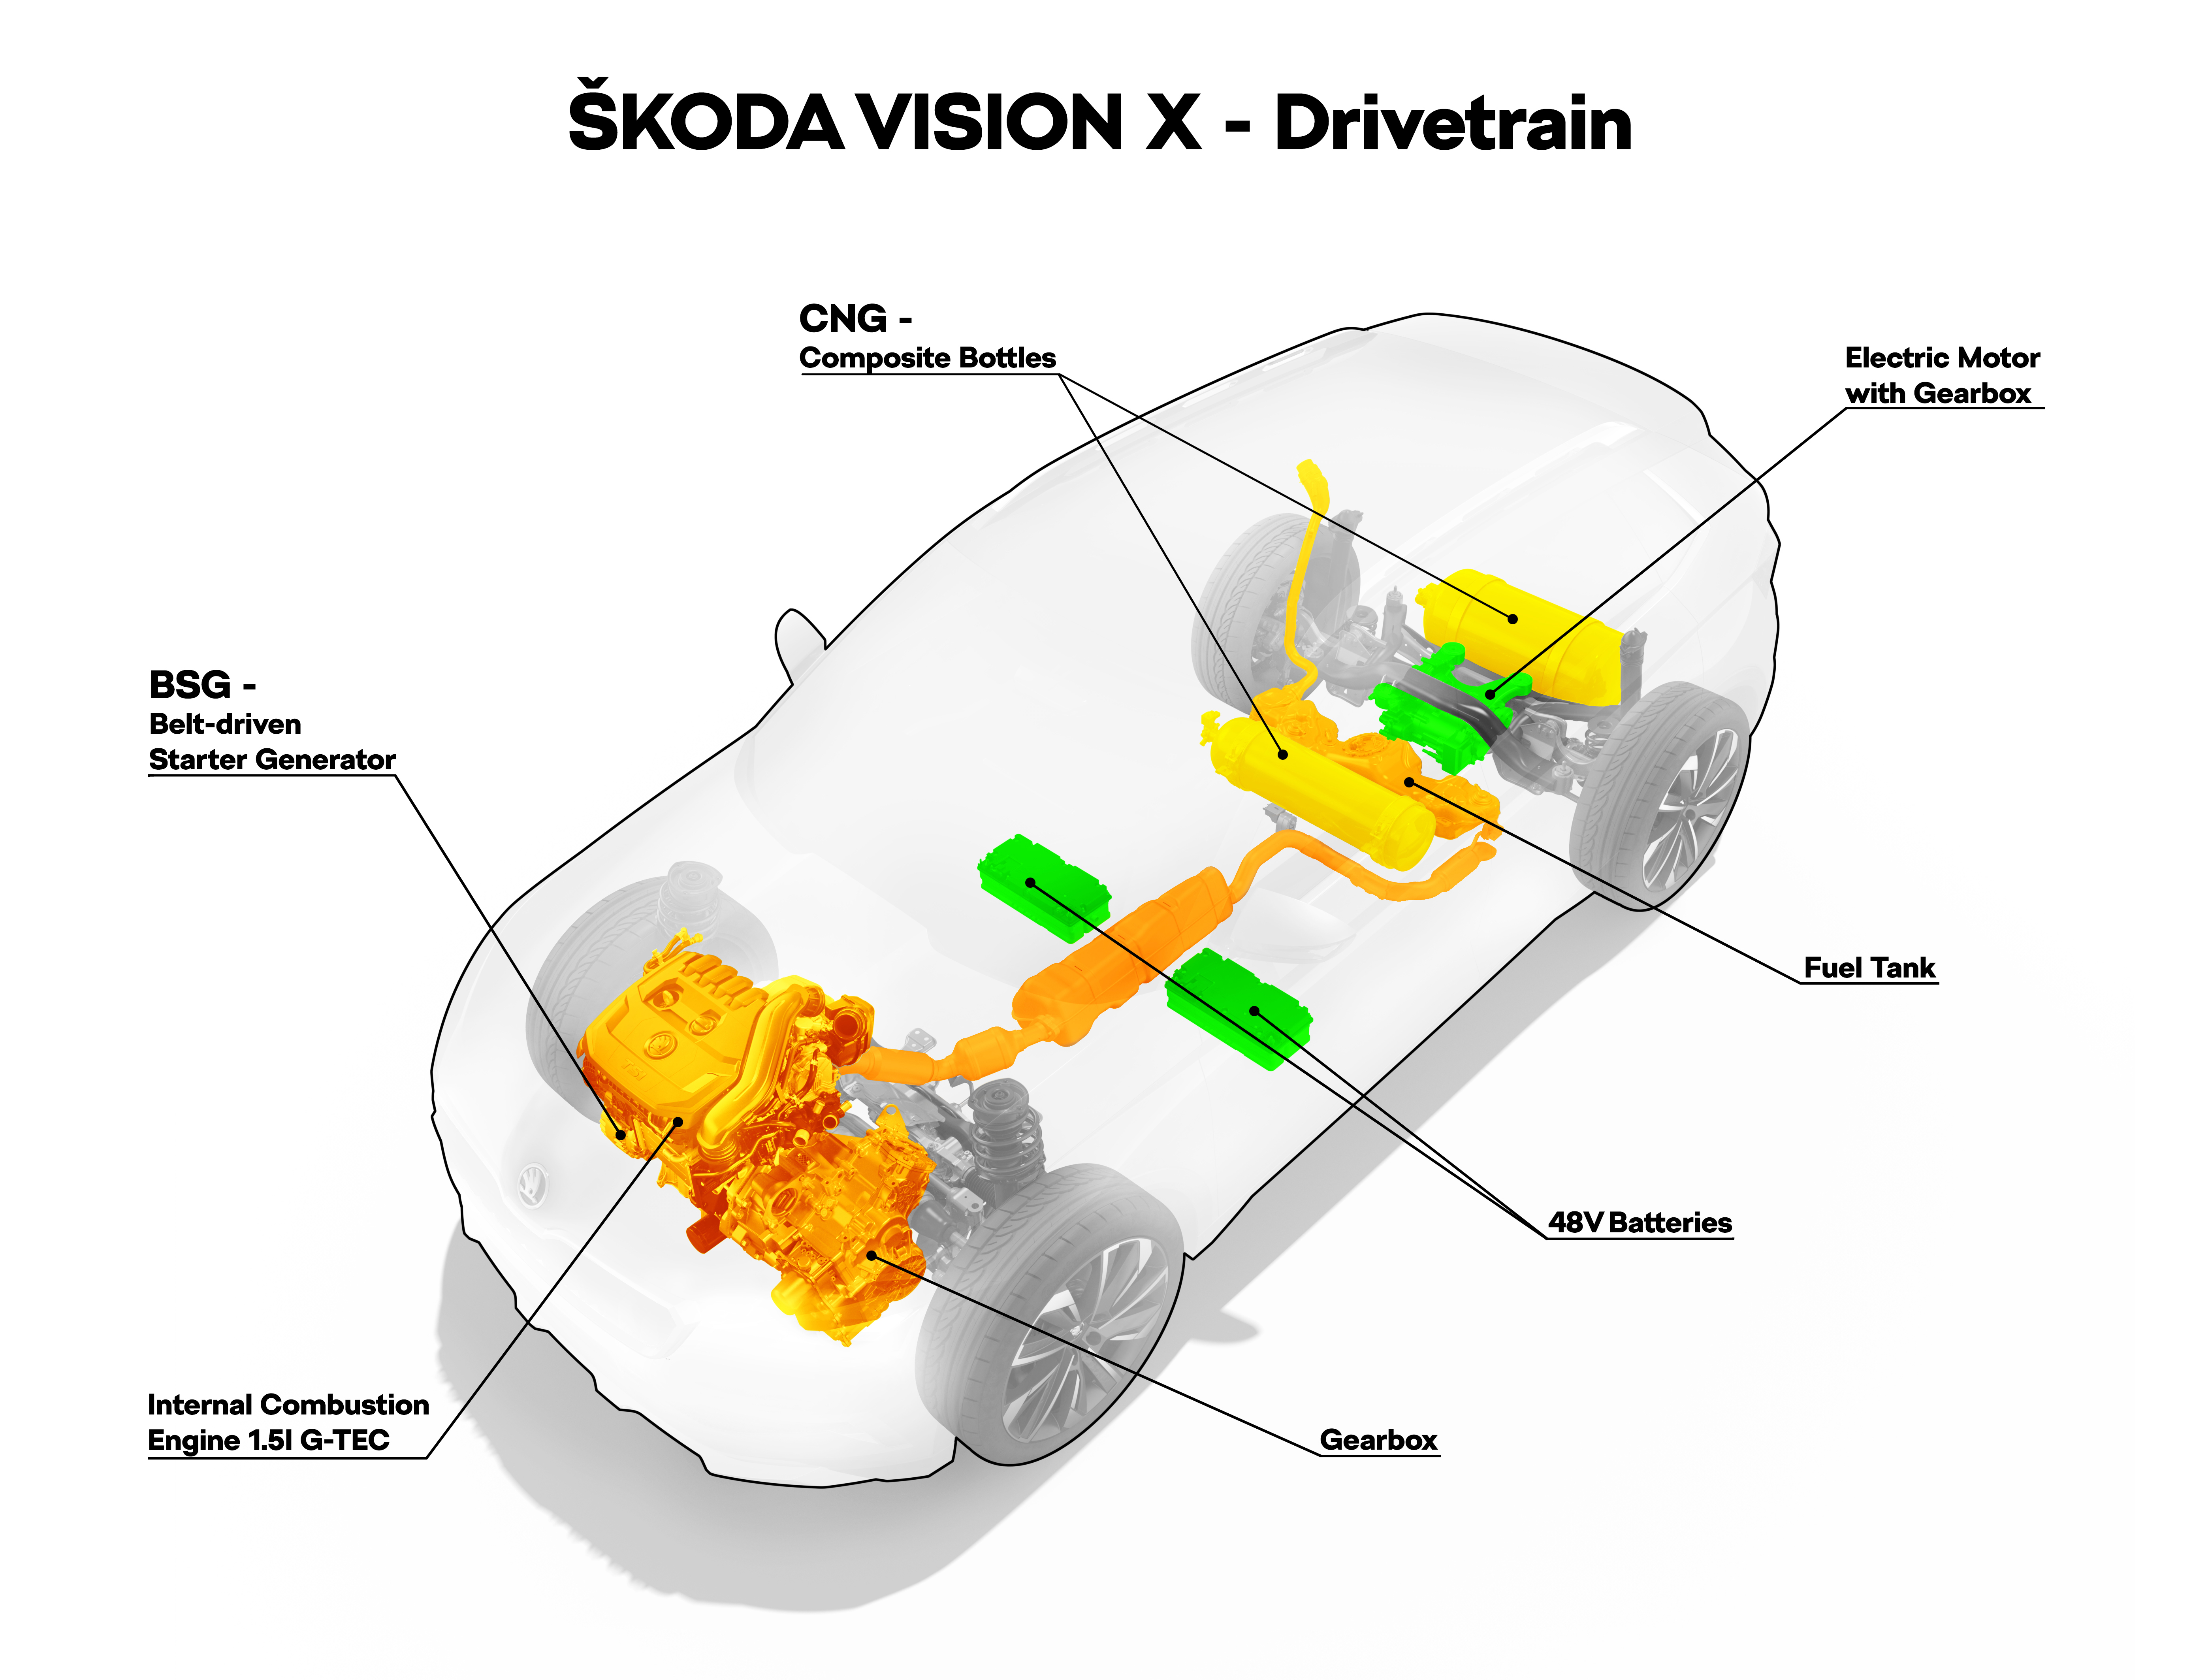 World Premiere In Geneva Koda Vision X Study Combines Cng Petrol First Combustion Engine Diagram And Electric Drive